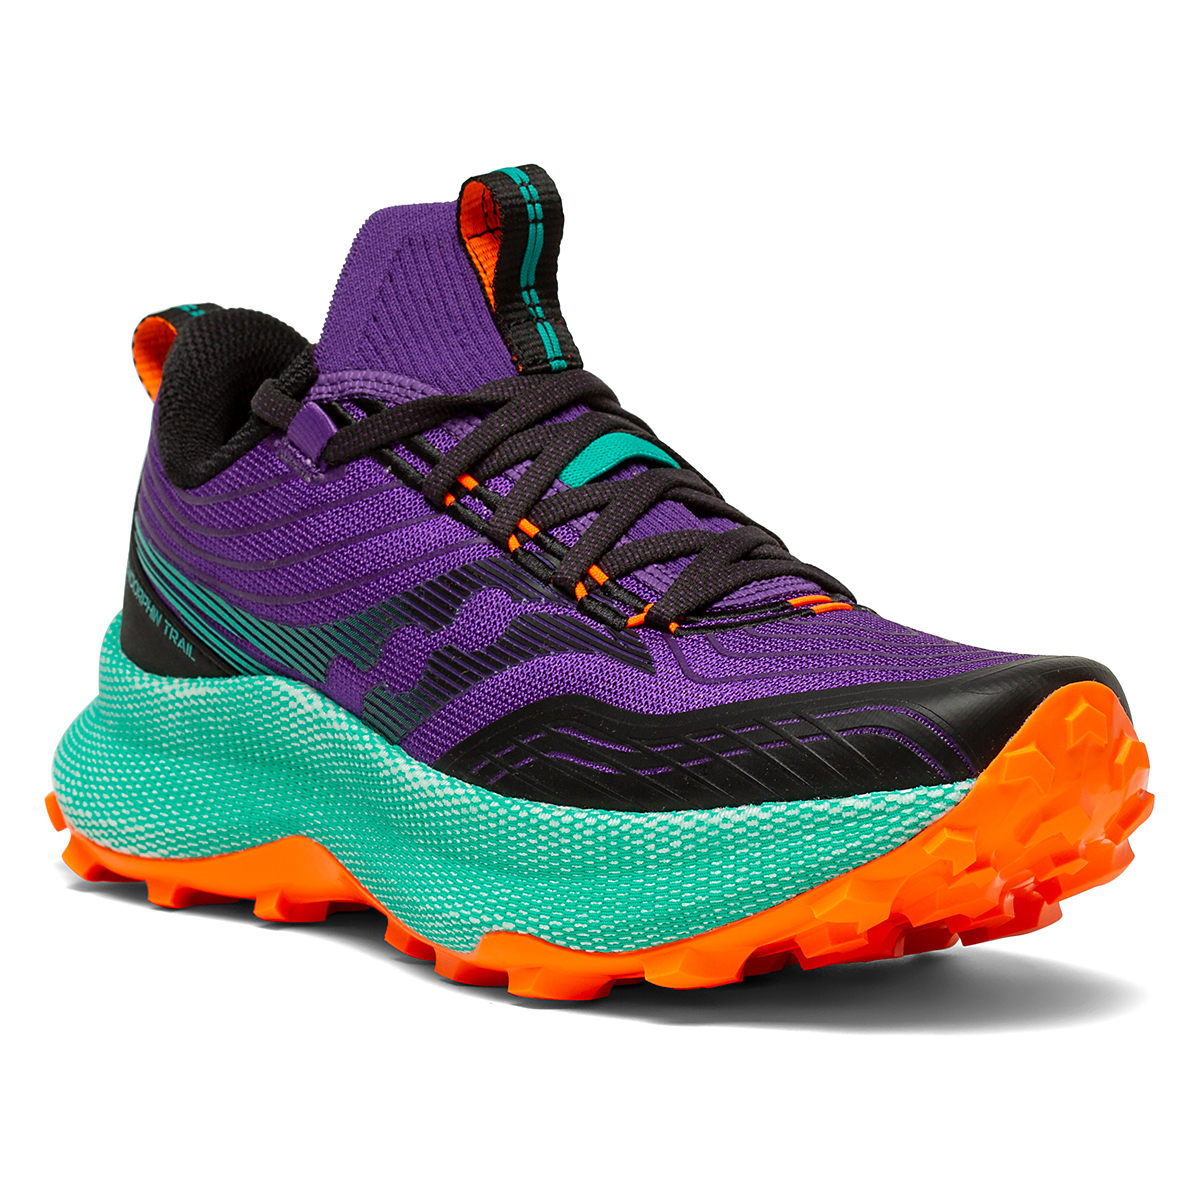 Women's Saucony Endorphin Trail Running Shoe - Color: Concord / Jade - Size: 5 - Width: Regular, Concord / Jade, large, image 5